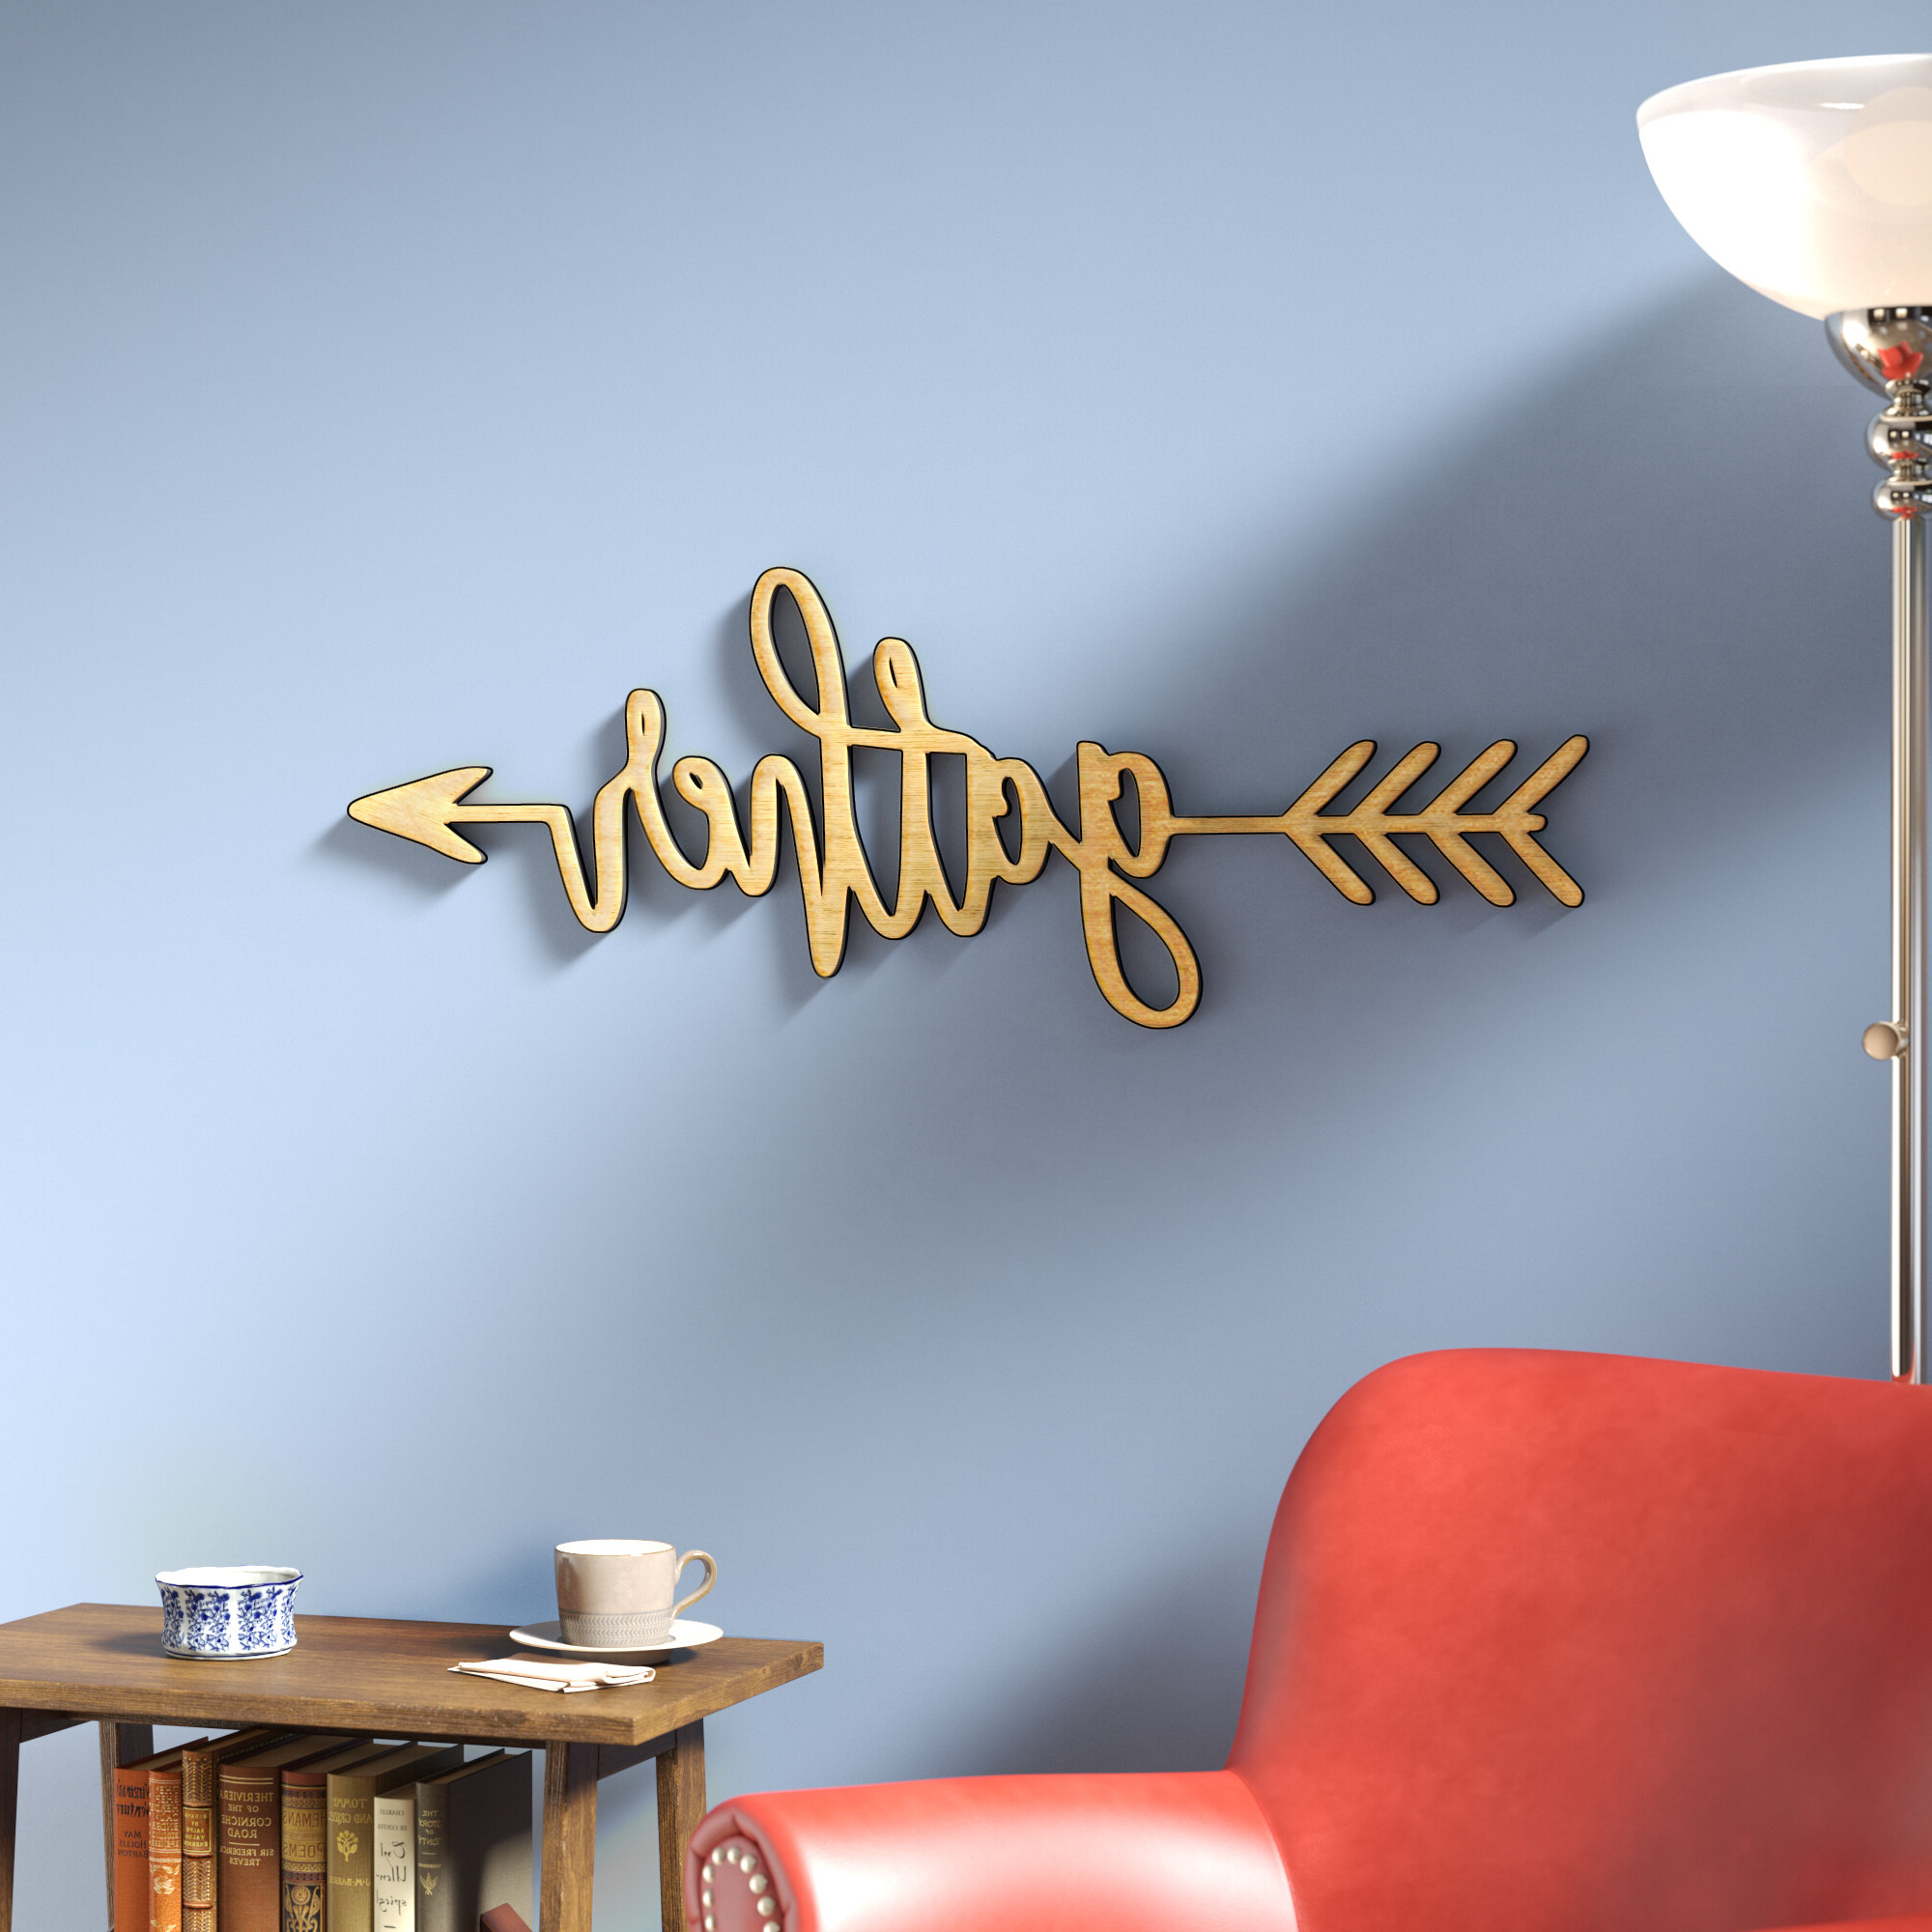 Wall Decor Intended For Best And Newest Gather Script Wall Décor By Winston Porter (View 10 of 20)